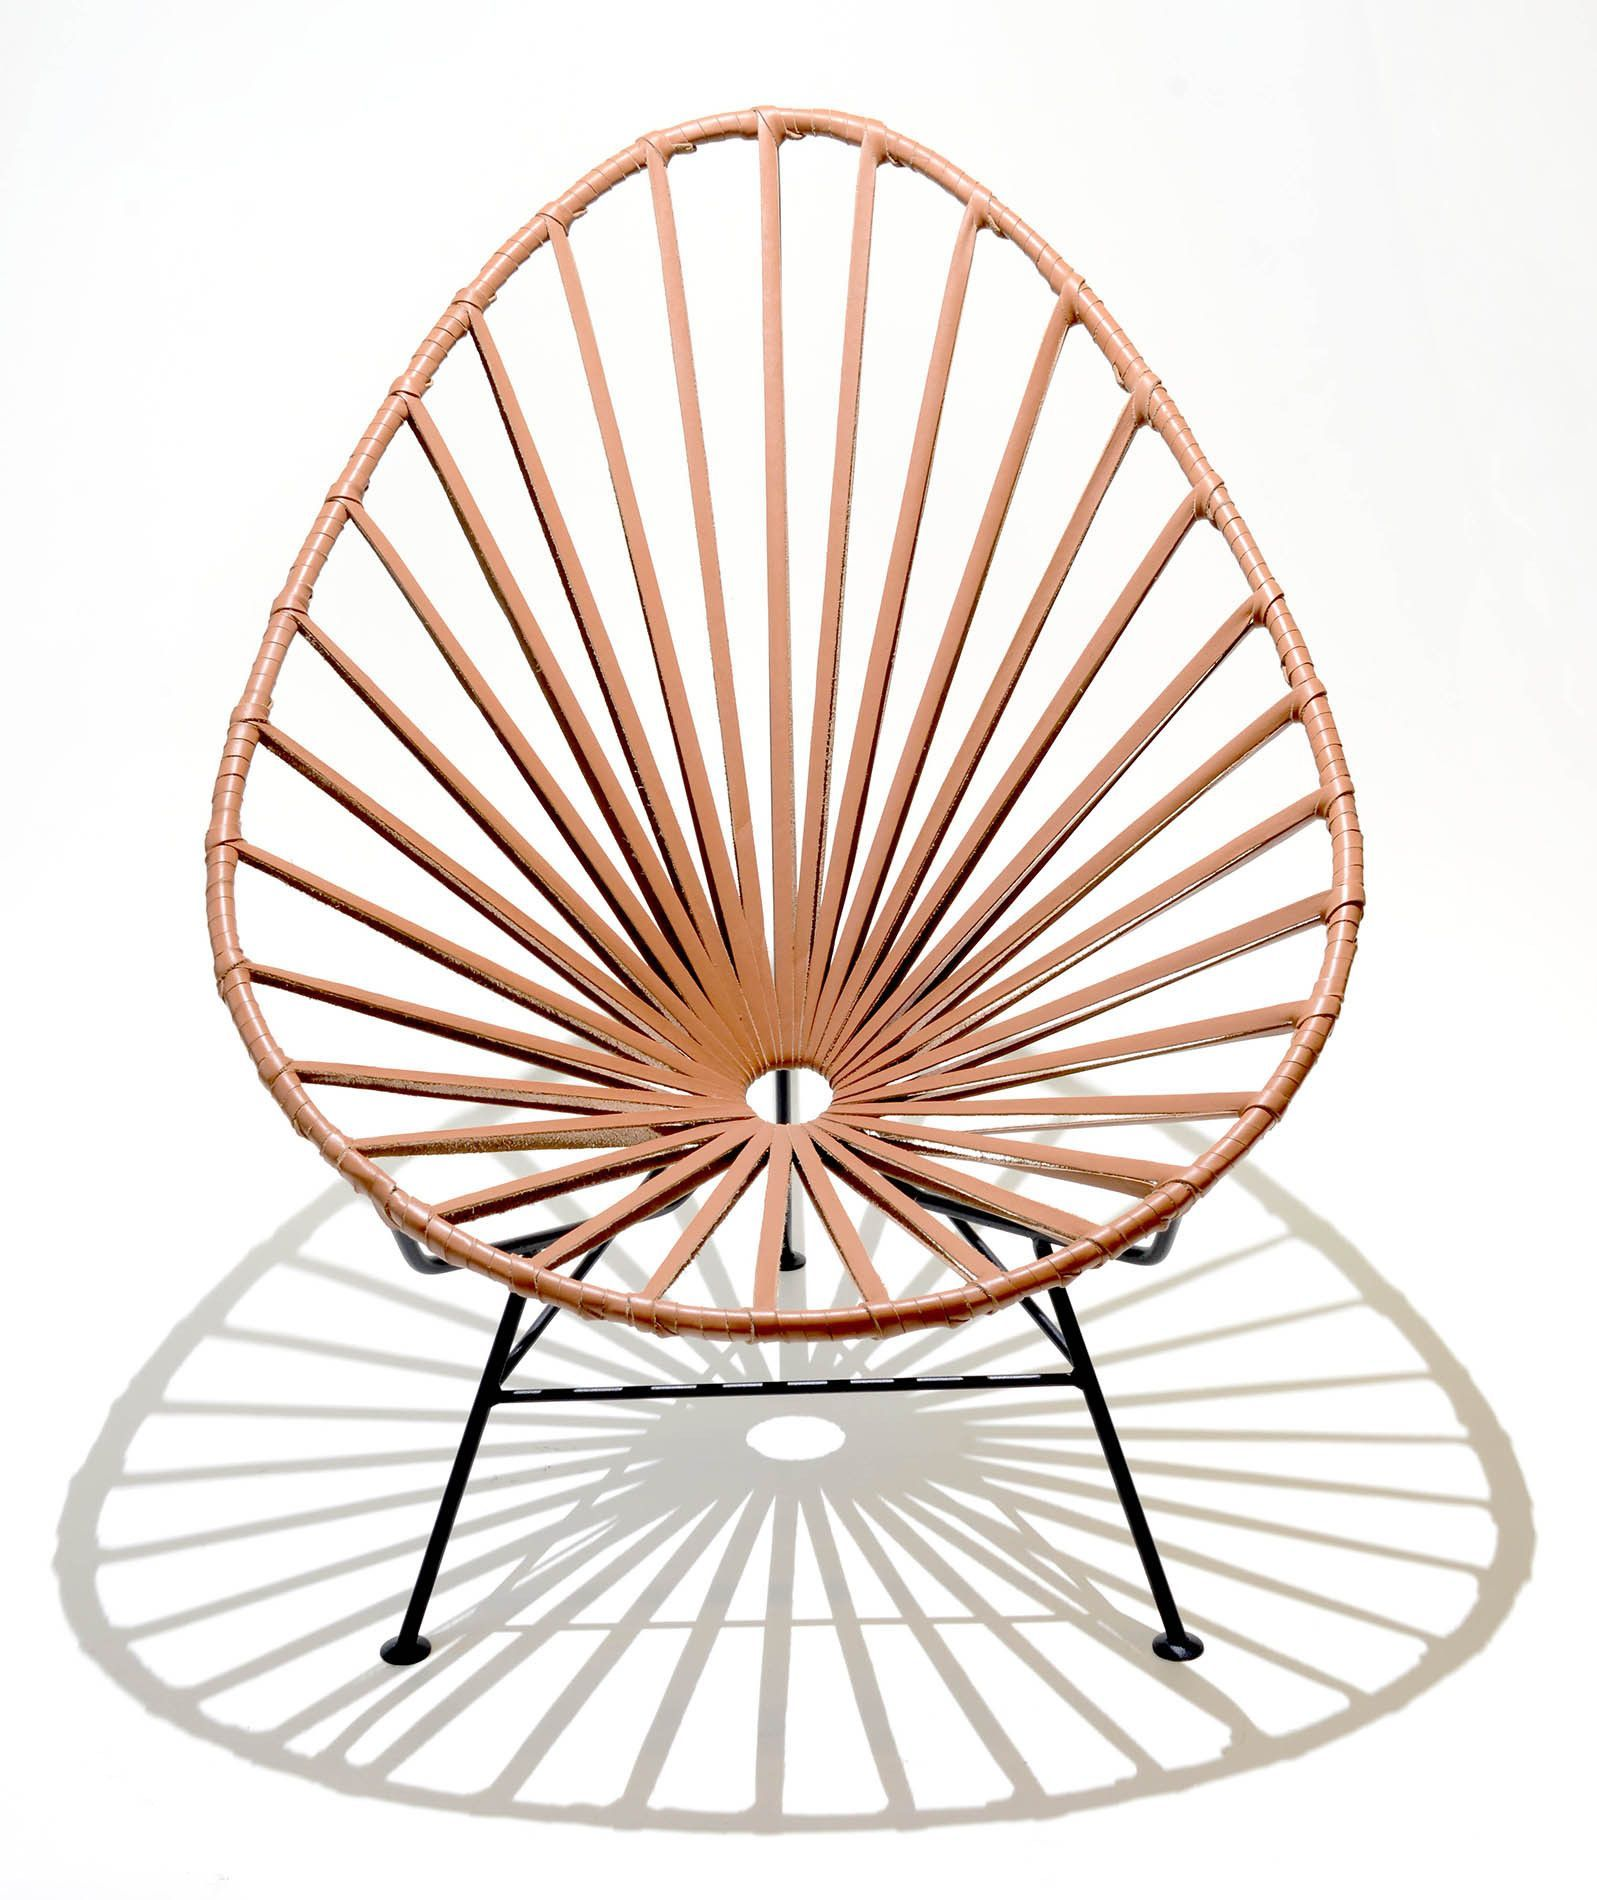 Acapulco chair leather - Acapulco Lounge Chair Leather